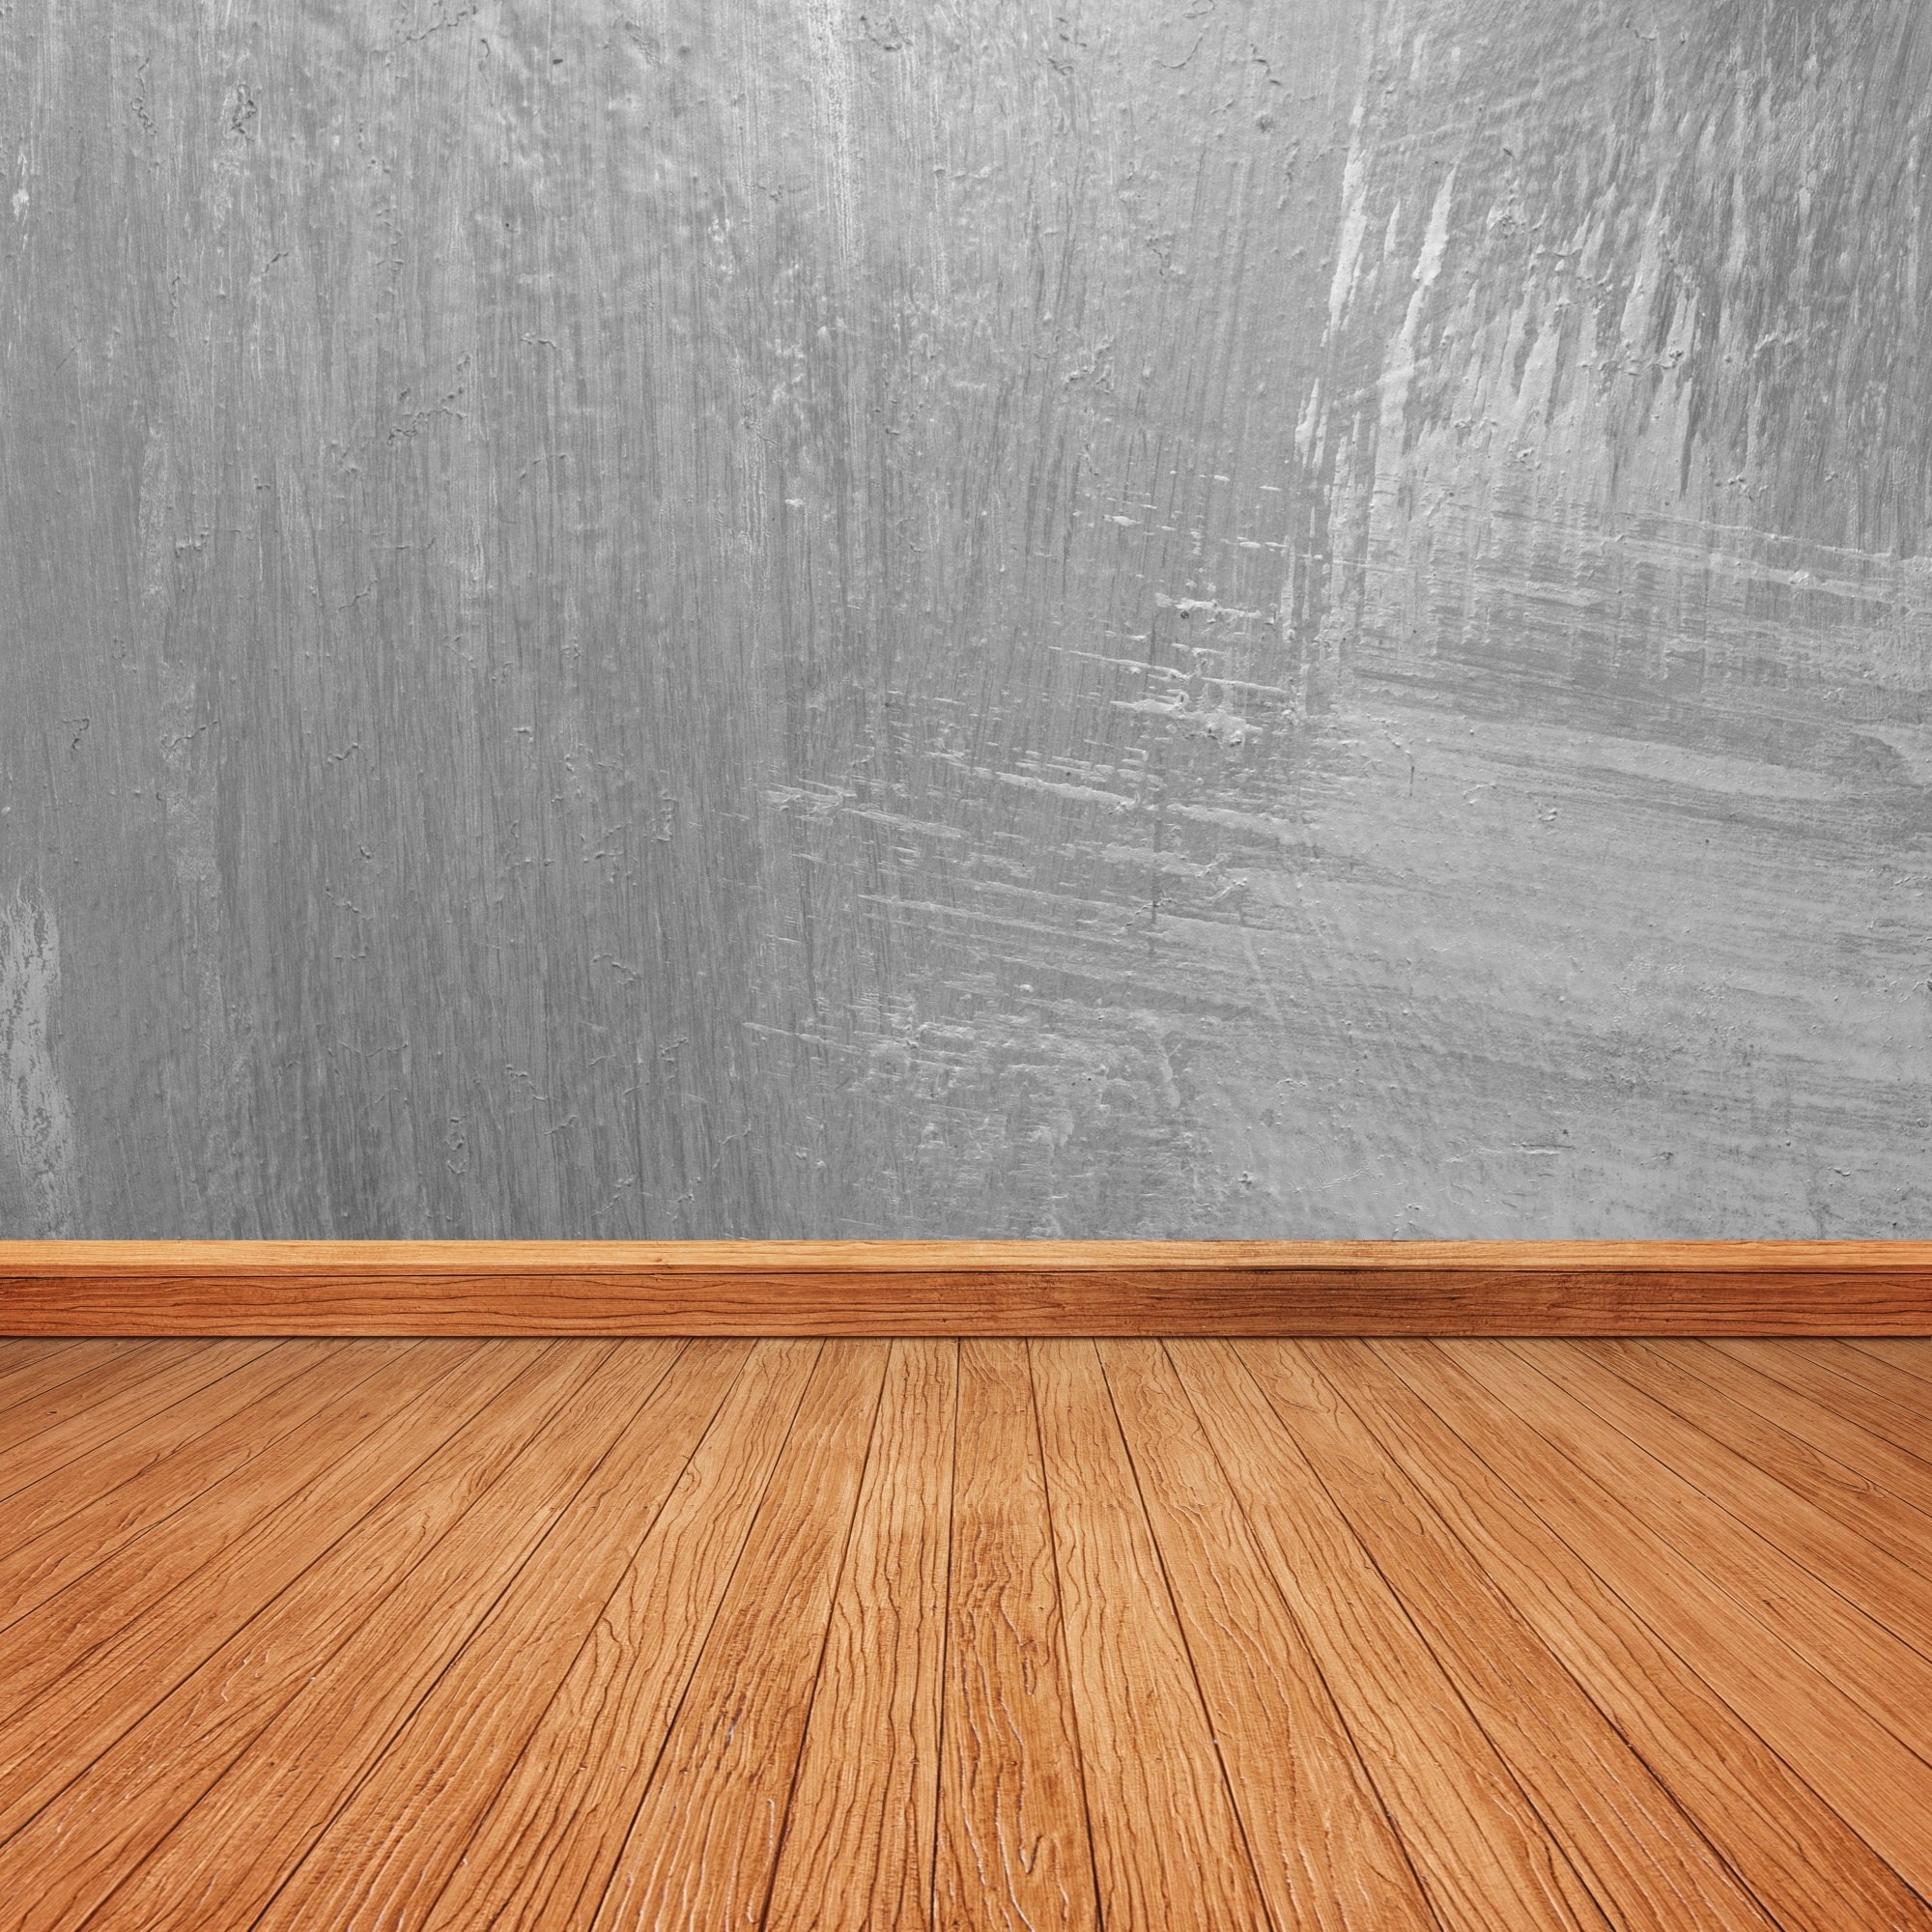 Wooden floor with a concrete wall